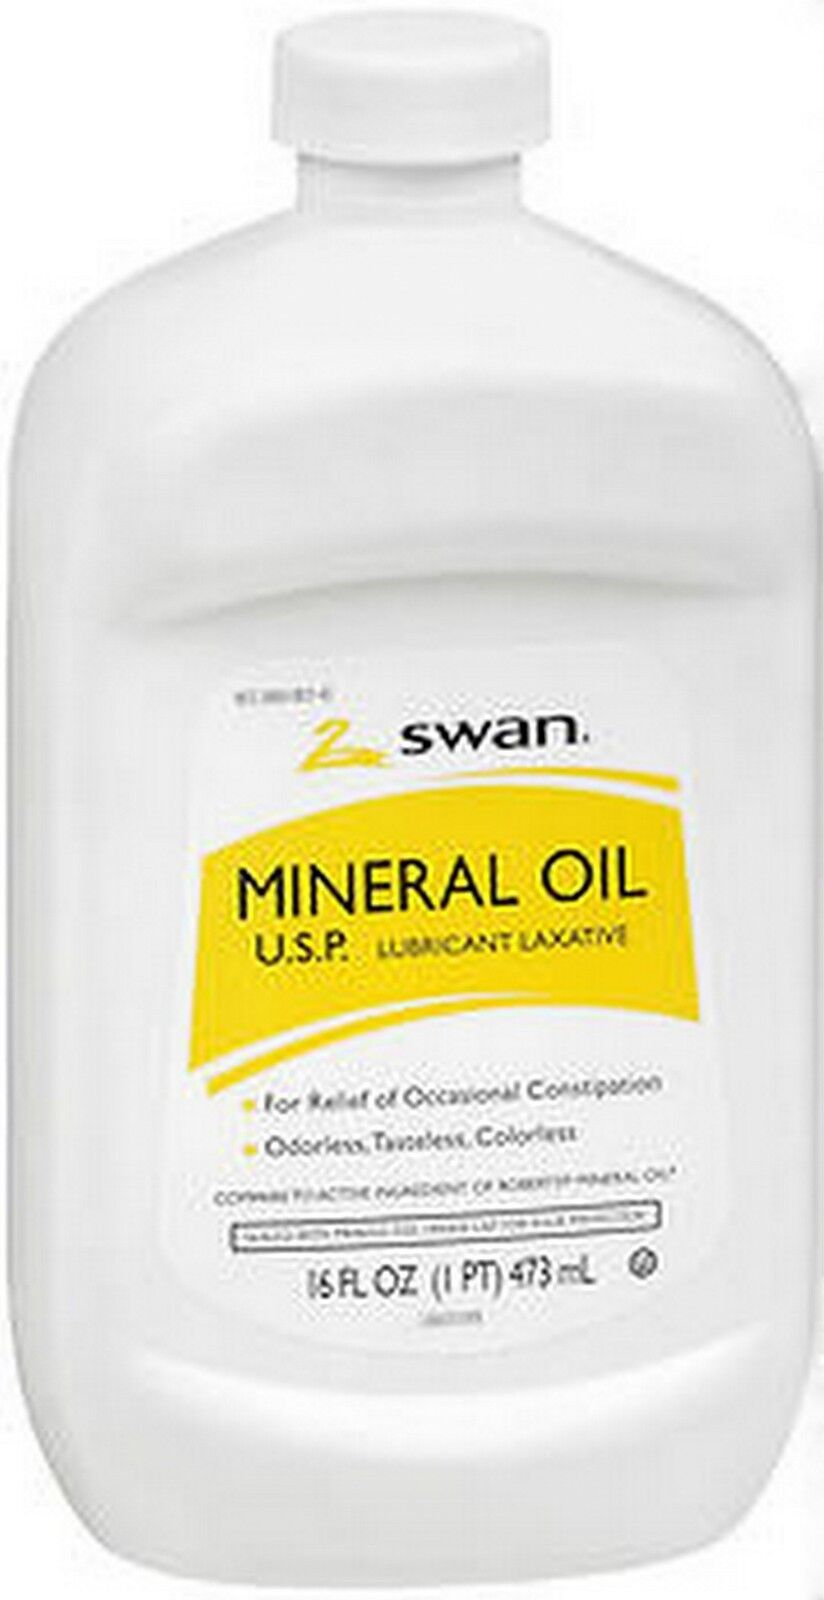 Mineral Oil Swan Lubricant Laxative Mineral Oil Odorless Tasteless Colorless 16oz For Sale Online Ebay